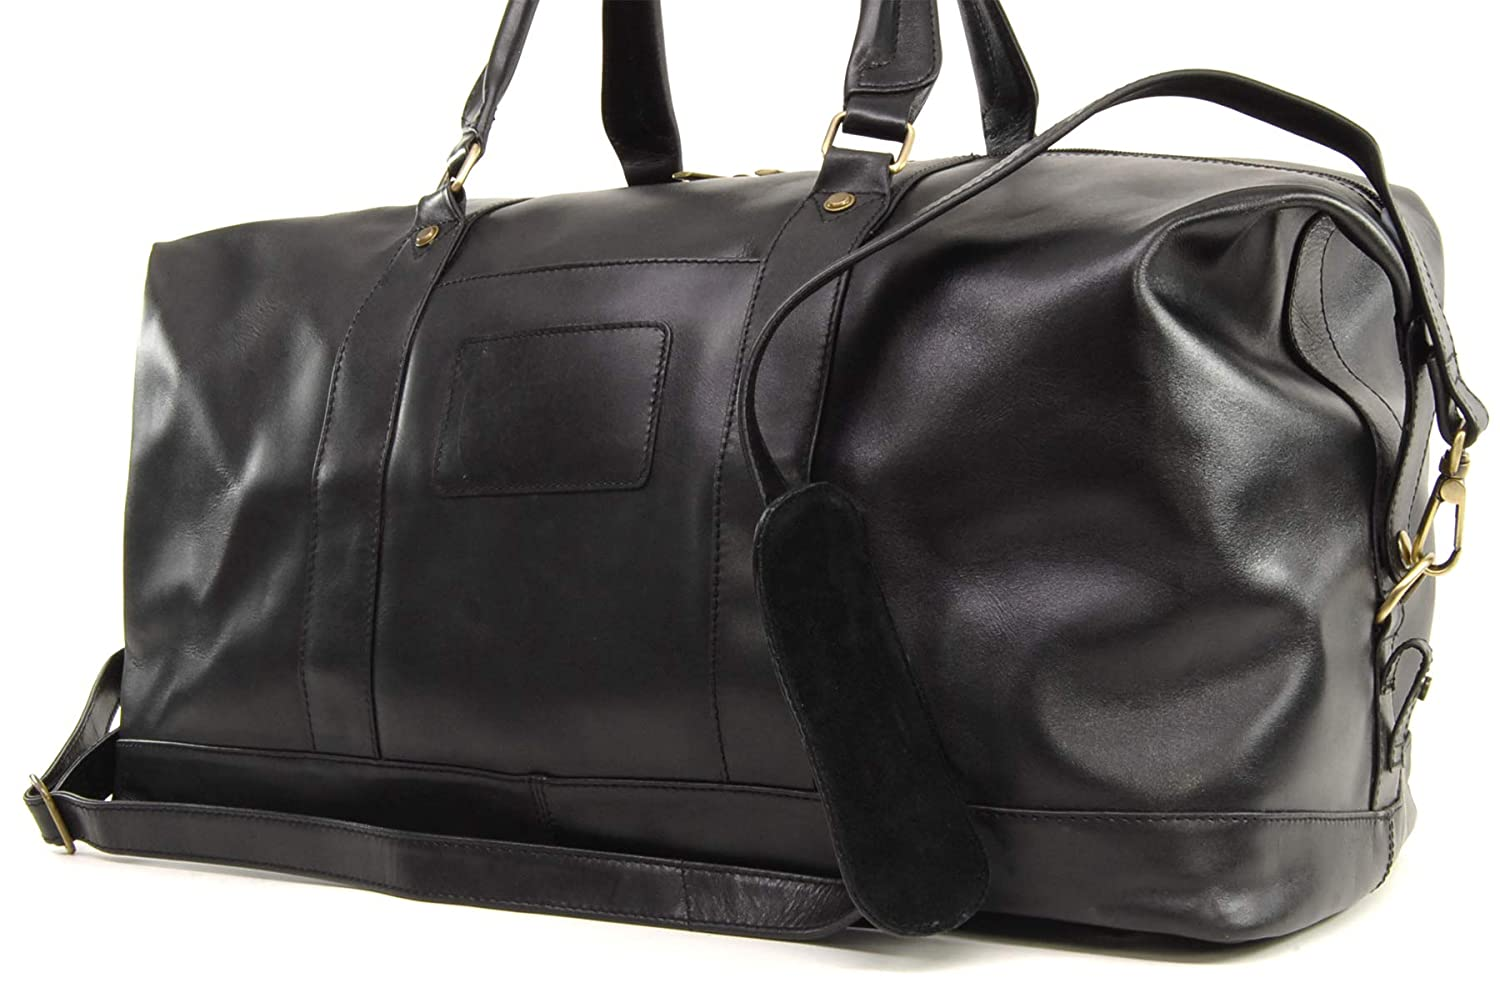 f0bb8cc65f3f Ashwood Travel Weekend Bag - Holdall - Black Leather  Amazon.co.uk  Luggage